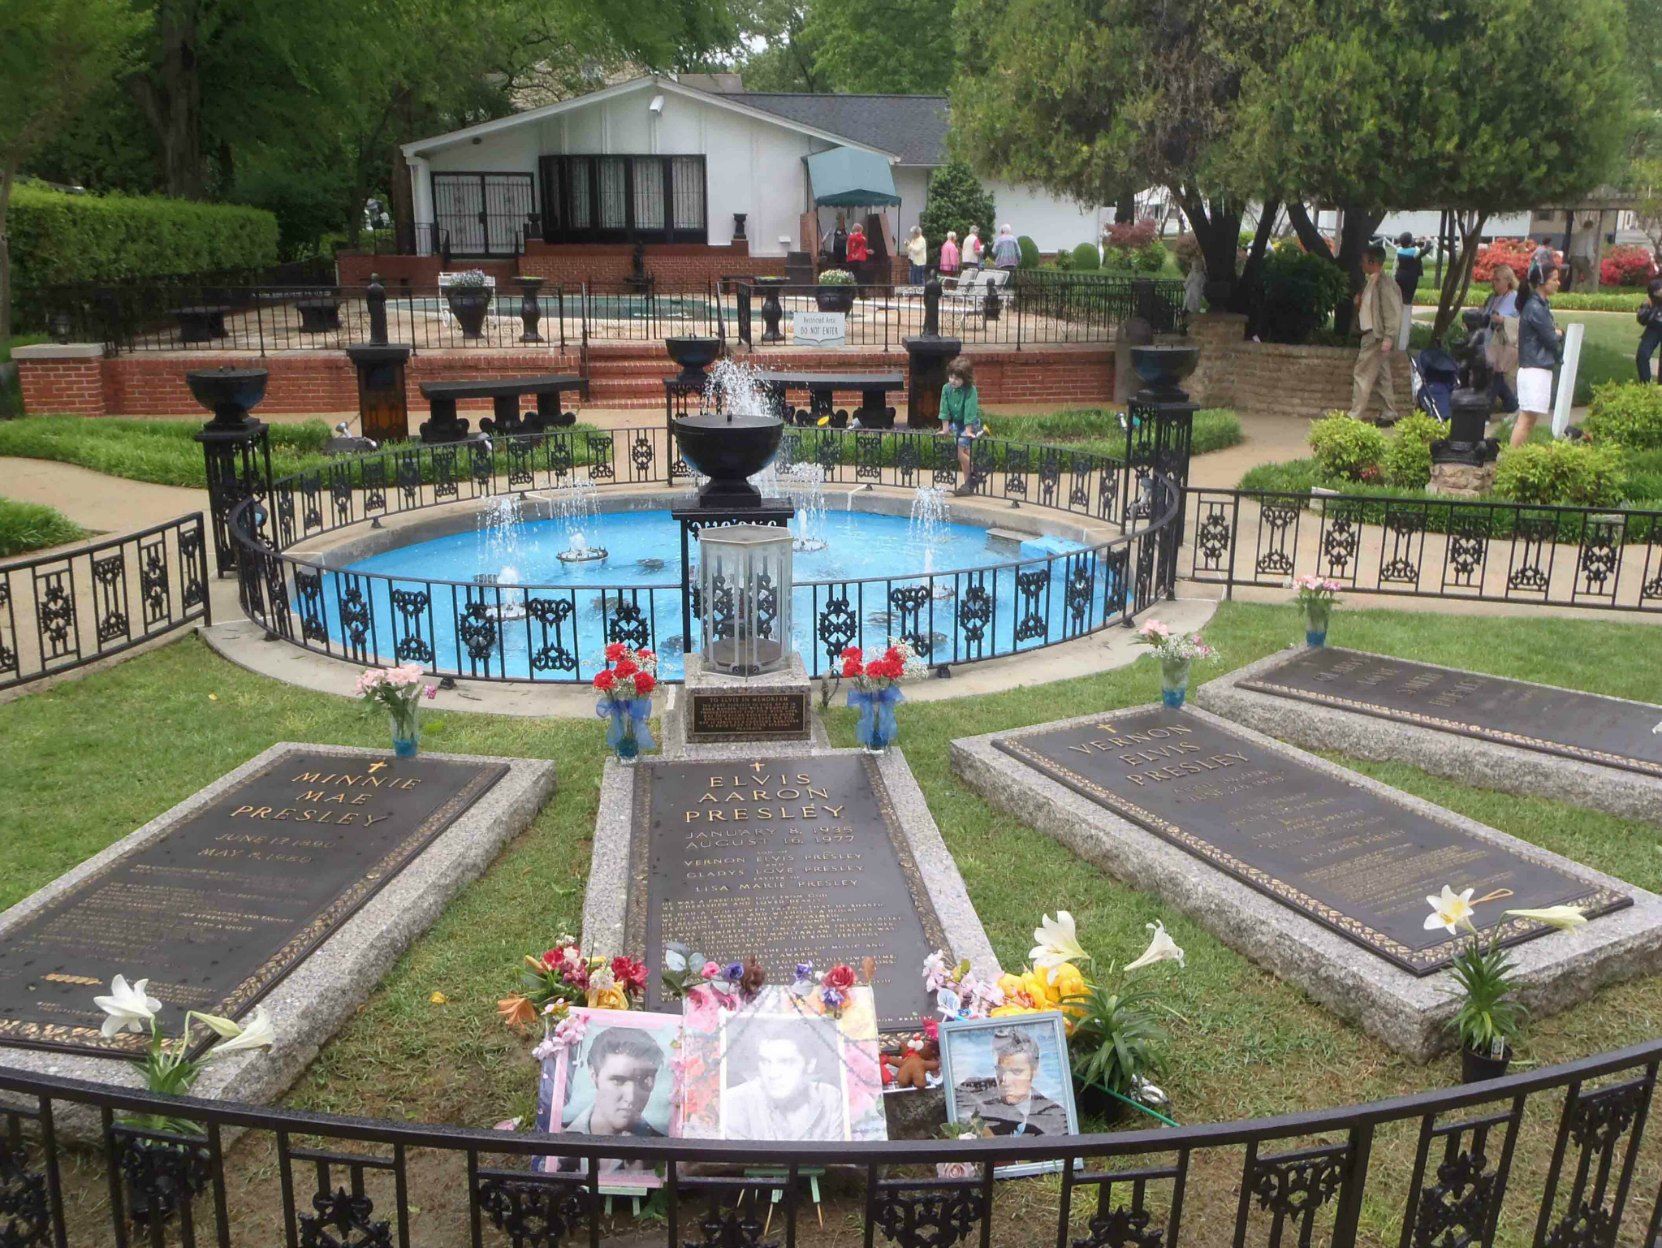 The graves of Elvis Presley, his mother Gladys Presley, his father Vernon Presley and his grandmother Minnie Mae Presley, Graceland, Memphis Tennessee